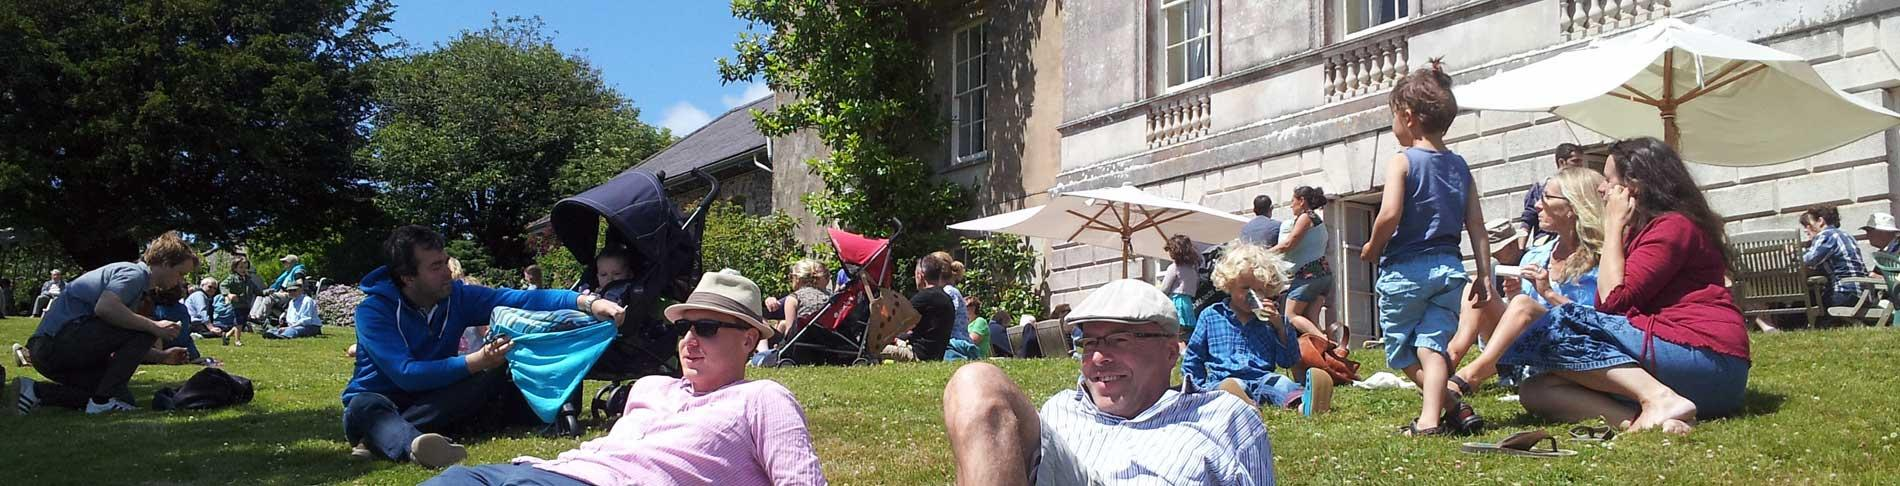 Summer Open Day at The Sharpham Trust